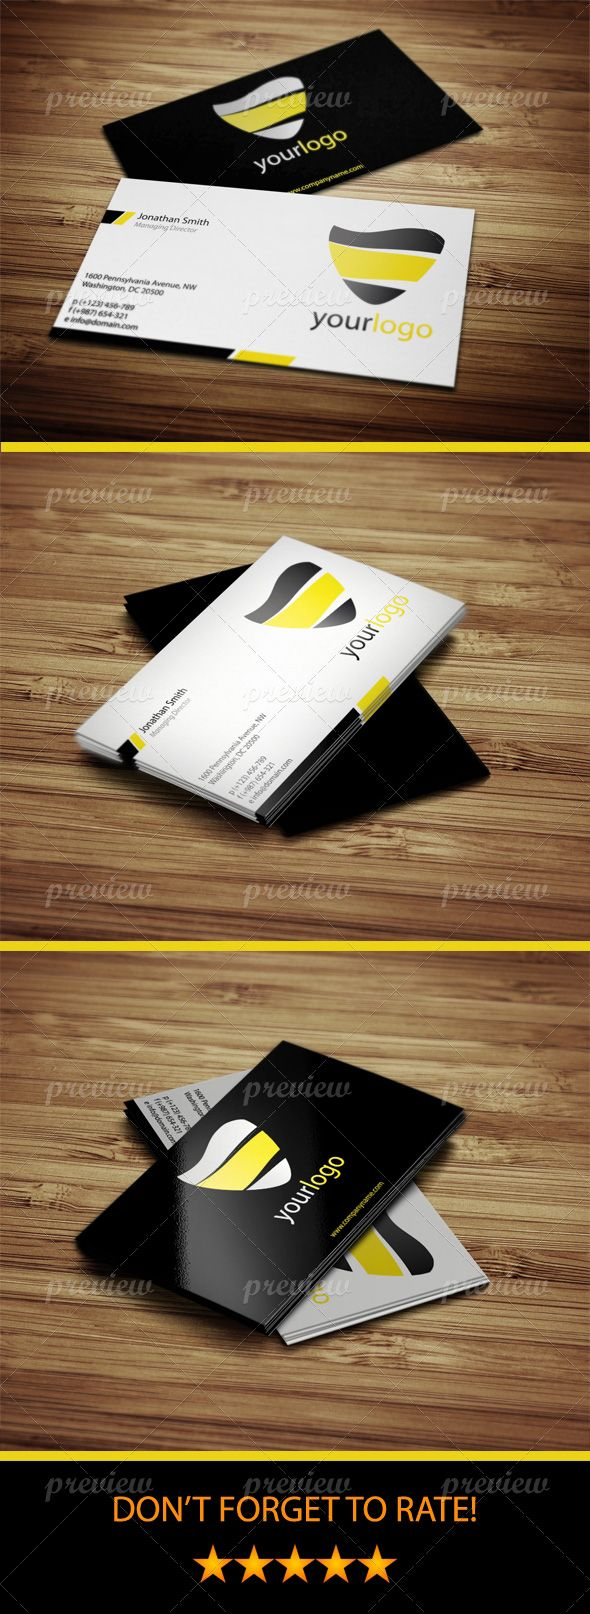 28 best premium business cards images on pinterest card designs clean simple business cards design using black white and yellow color scheme and magicingreecefo Gallery